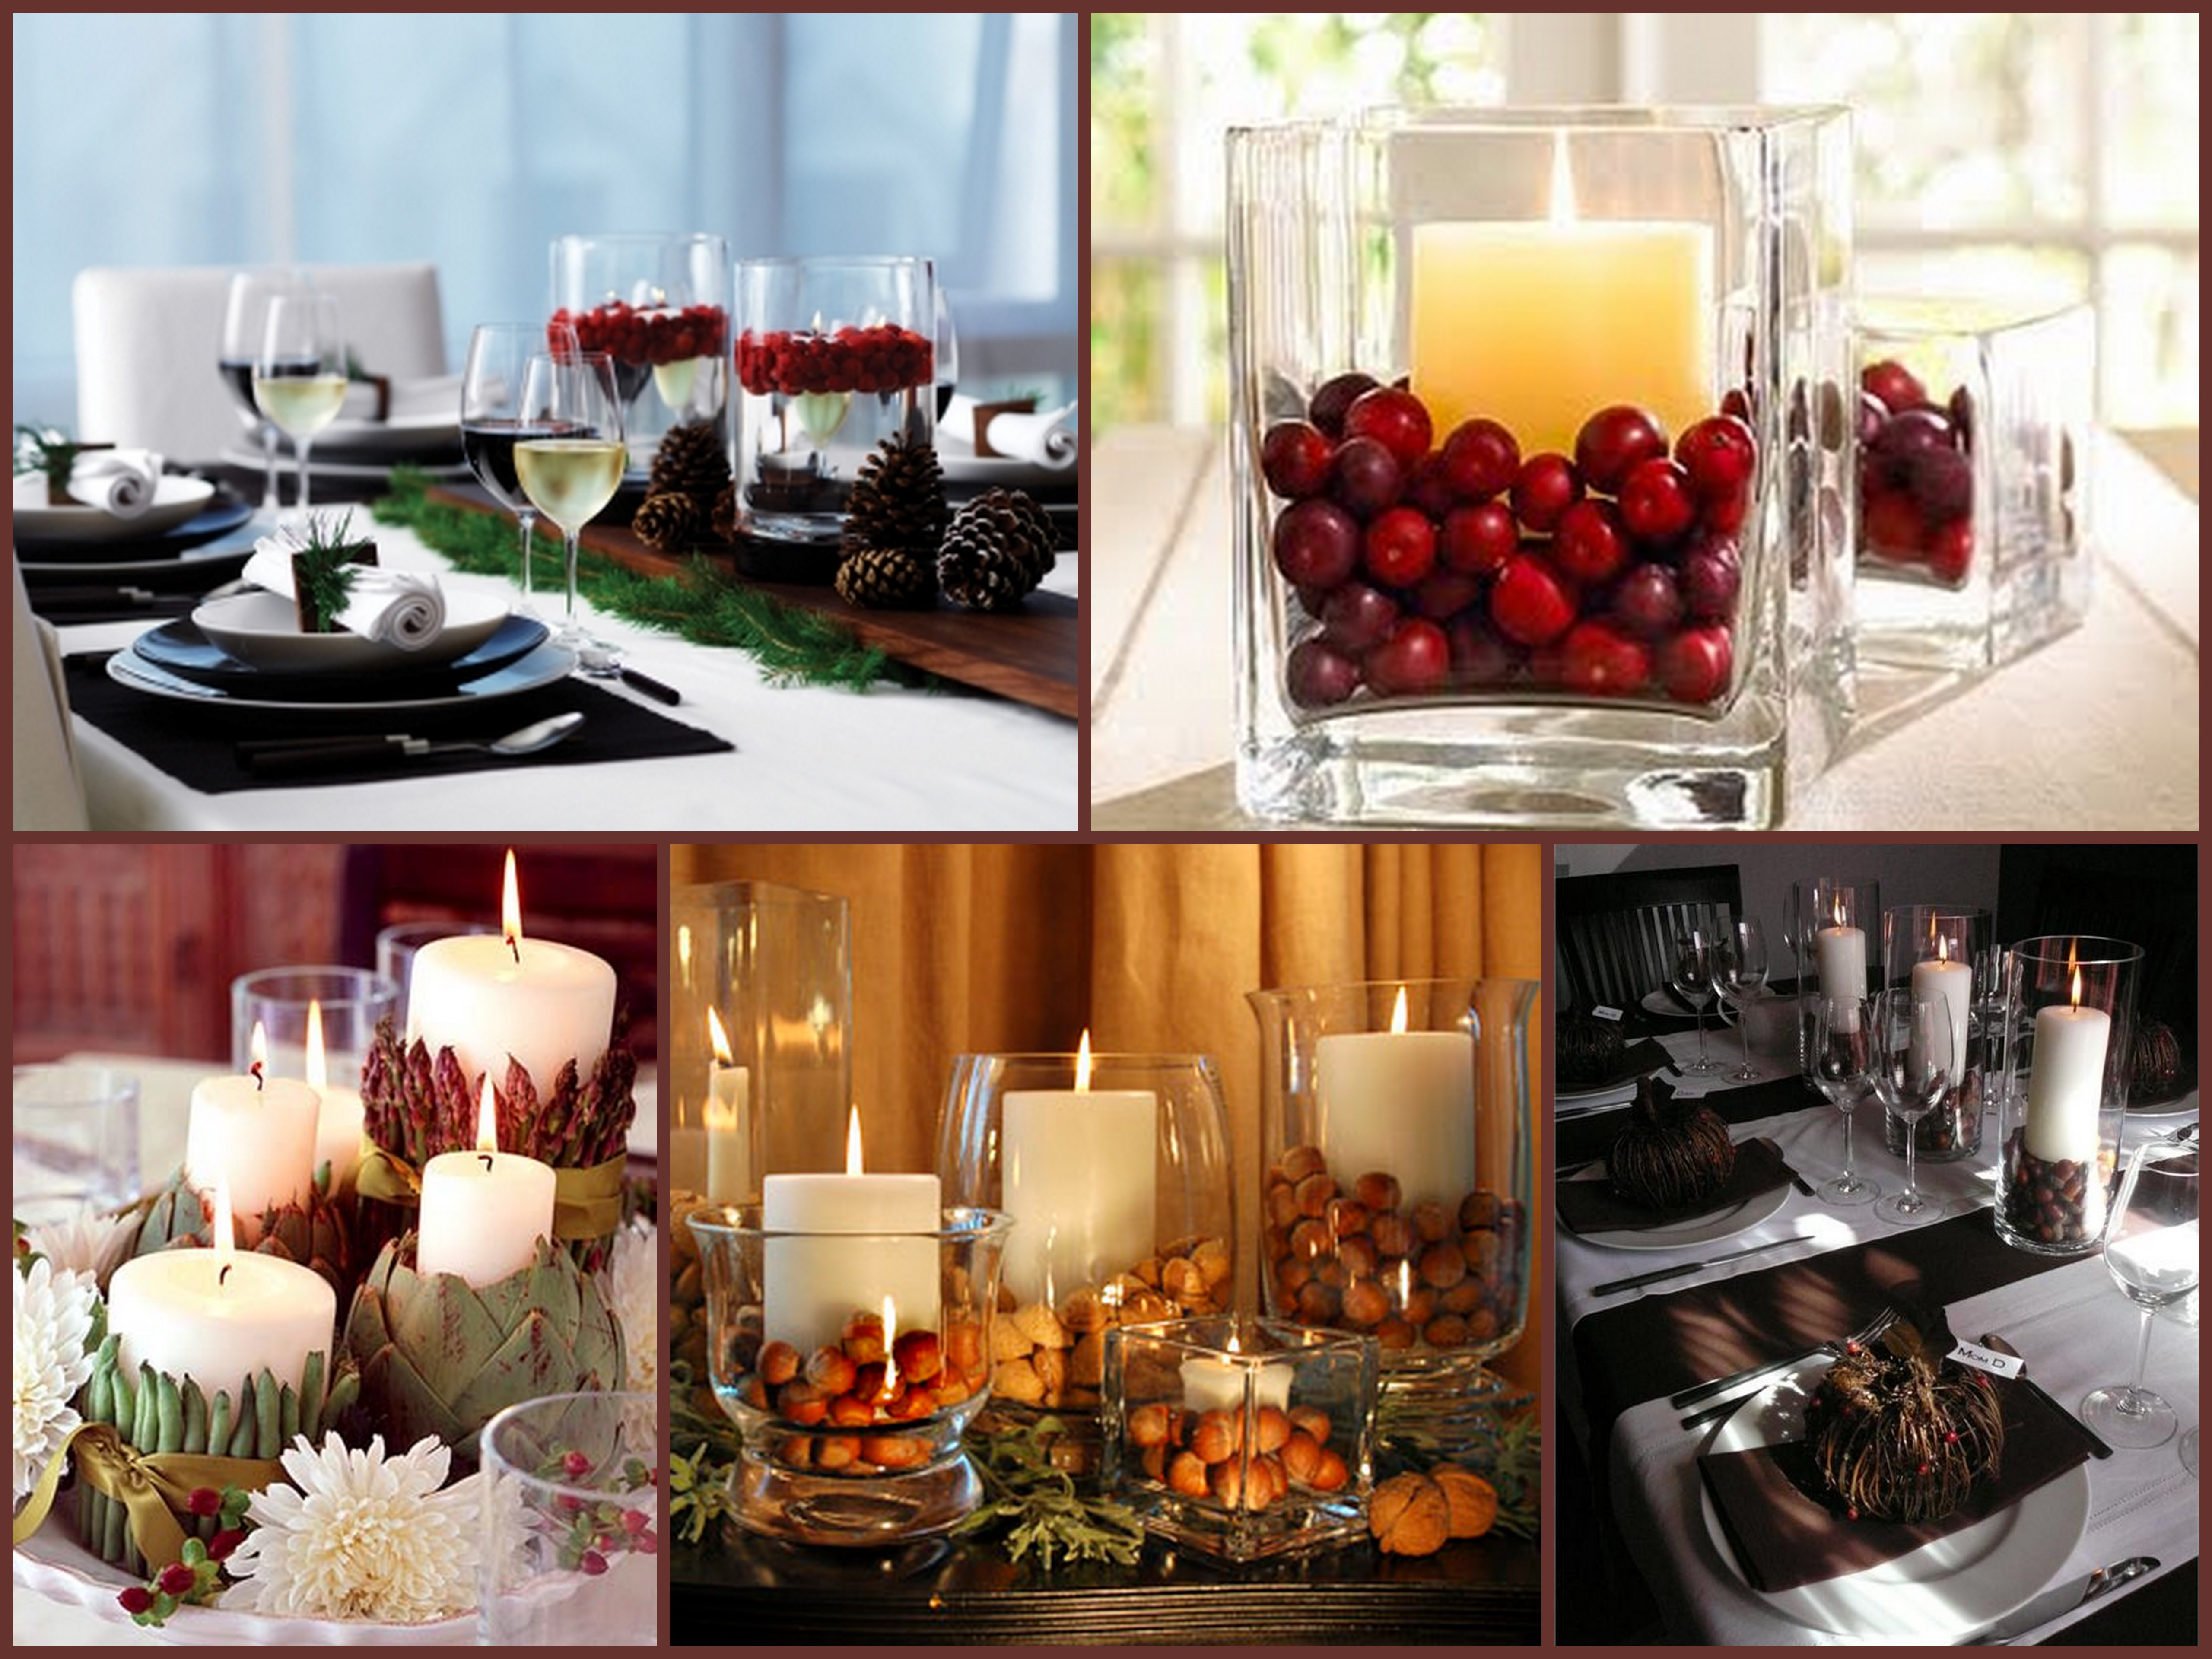 Thanksgiving Table Ideas  Last Minute Holiday Centerpiece – A S D INTERIORS BLOG